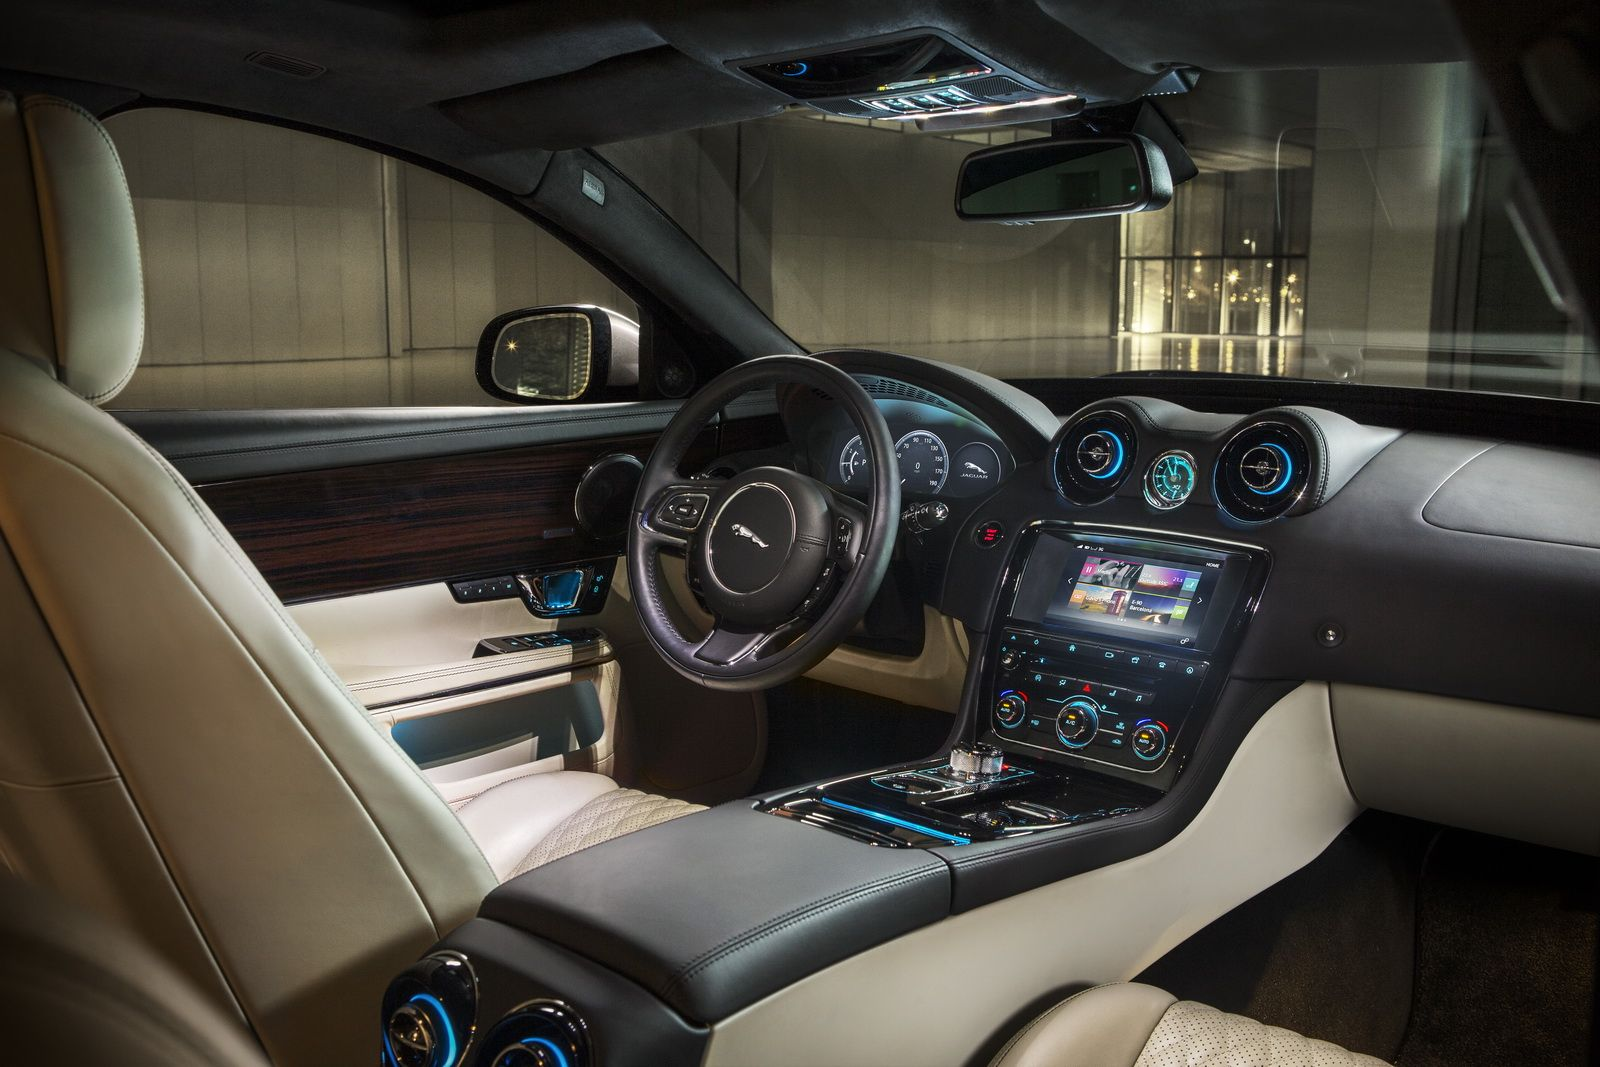 New Jaguar Xj Will Be Just As Stylish But Even More Advanced Jaguar Xj New Jaguar Jaguar